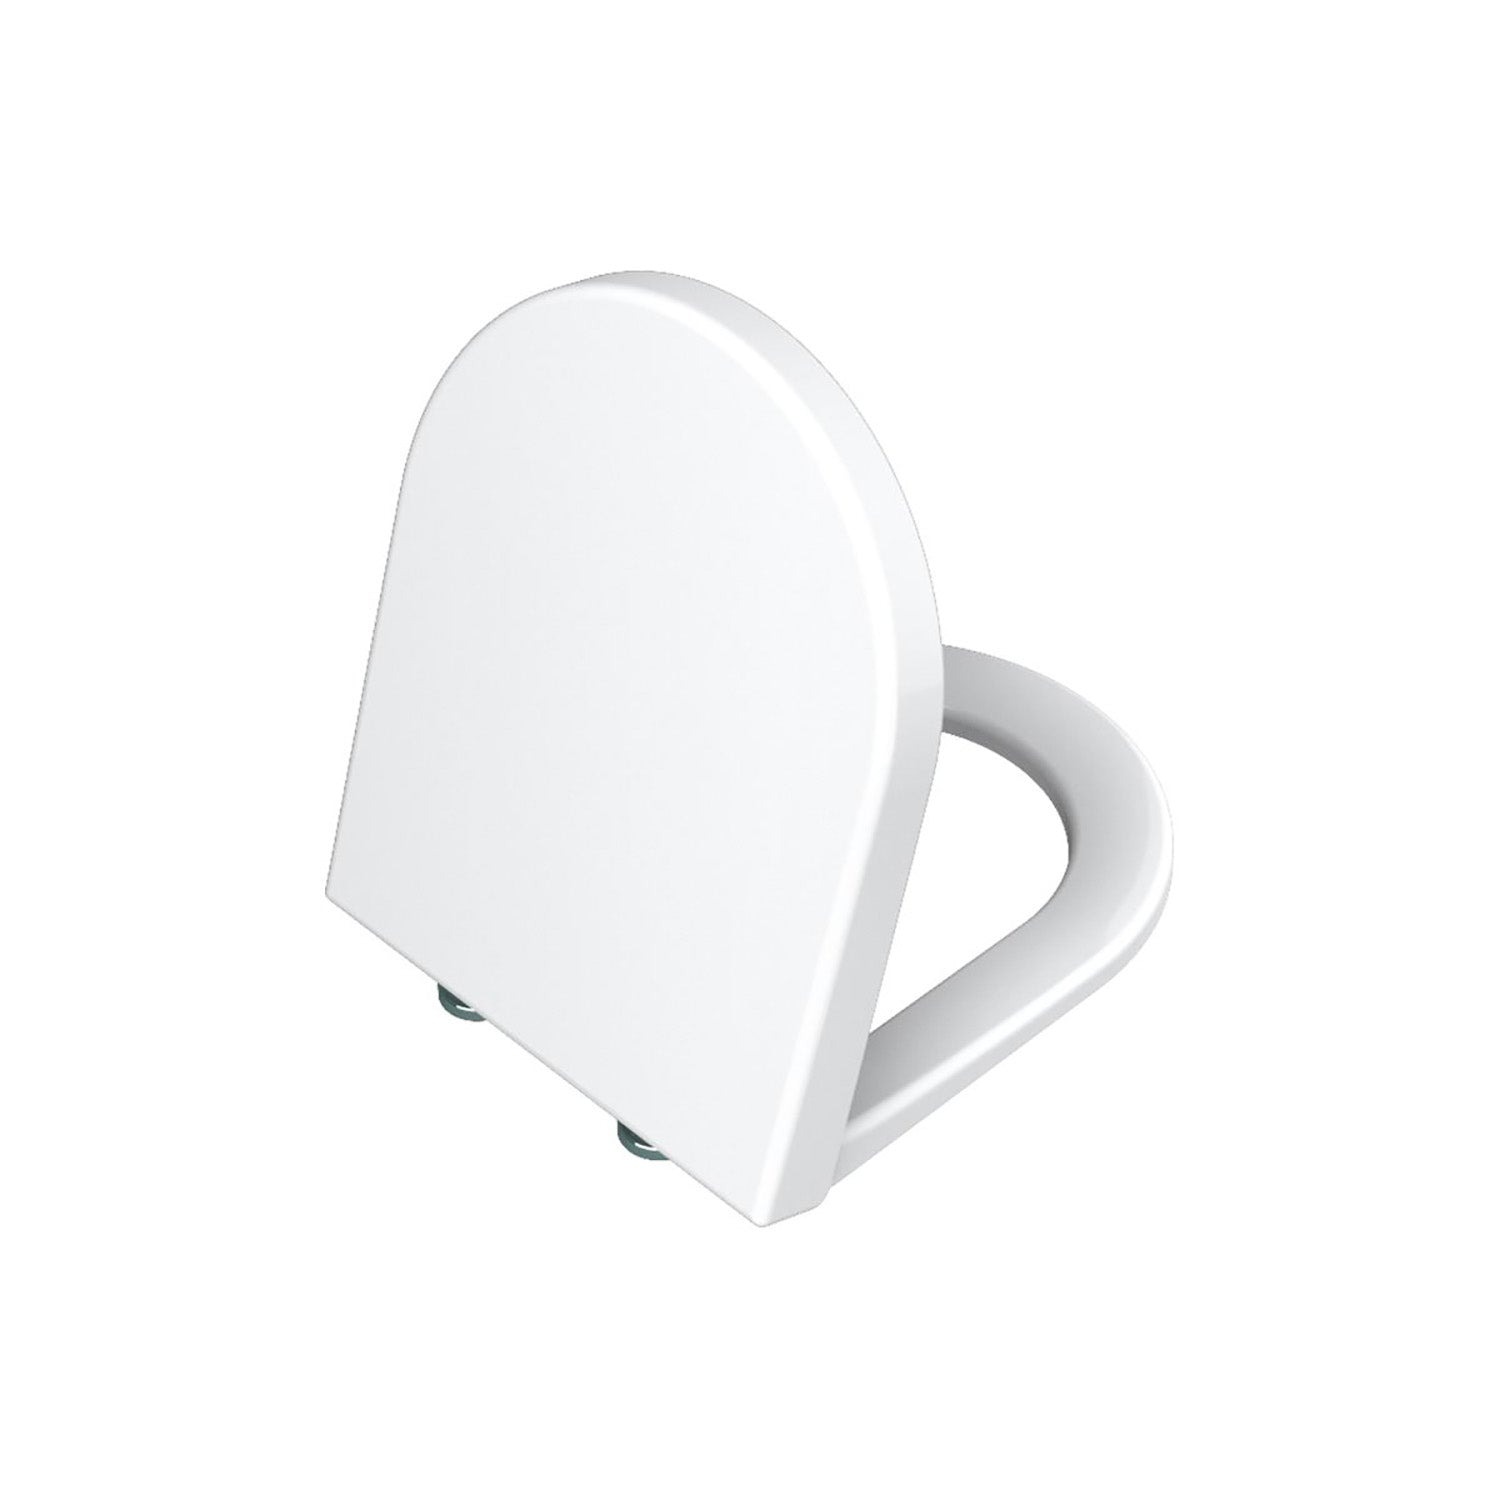 Vesta Close Coupled Seat and Cover on a white background